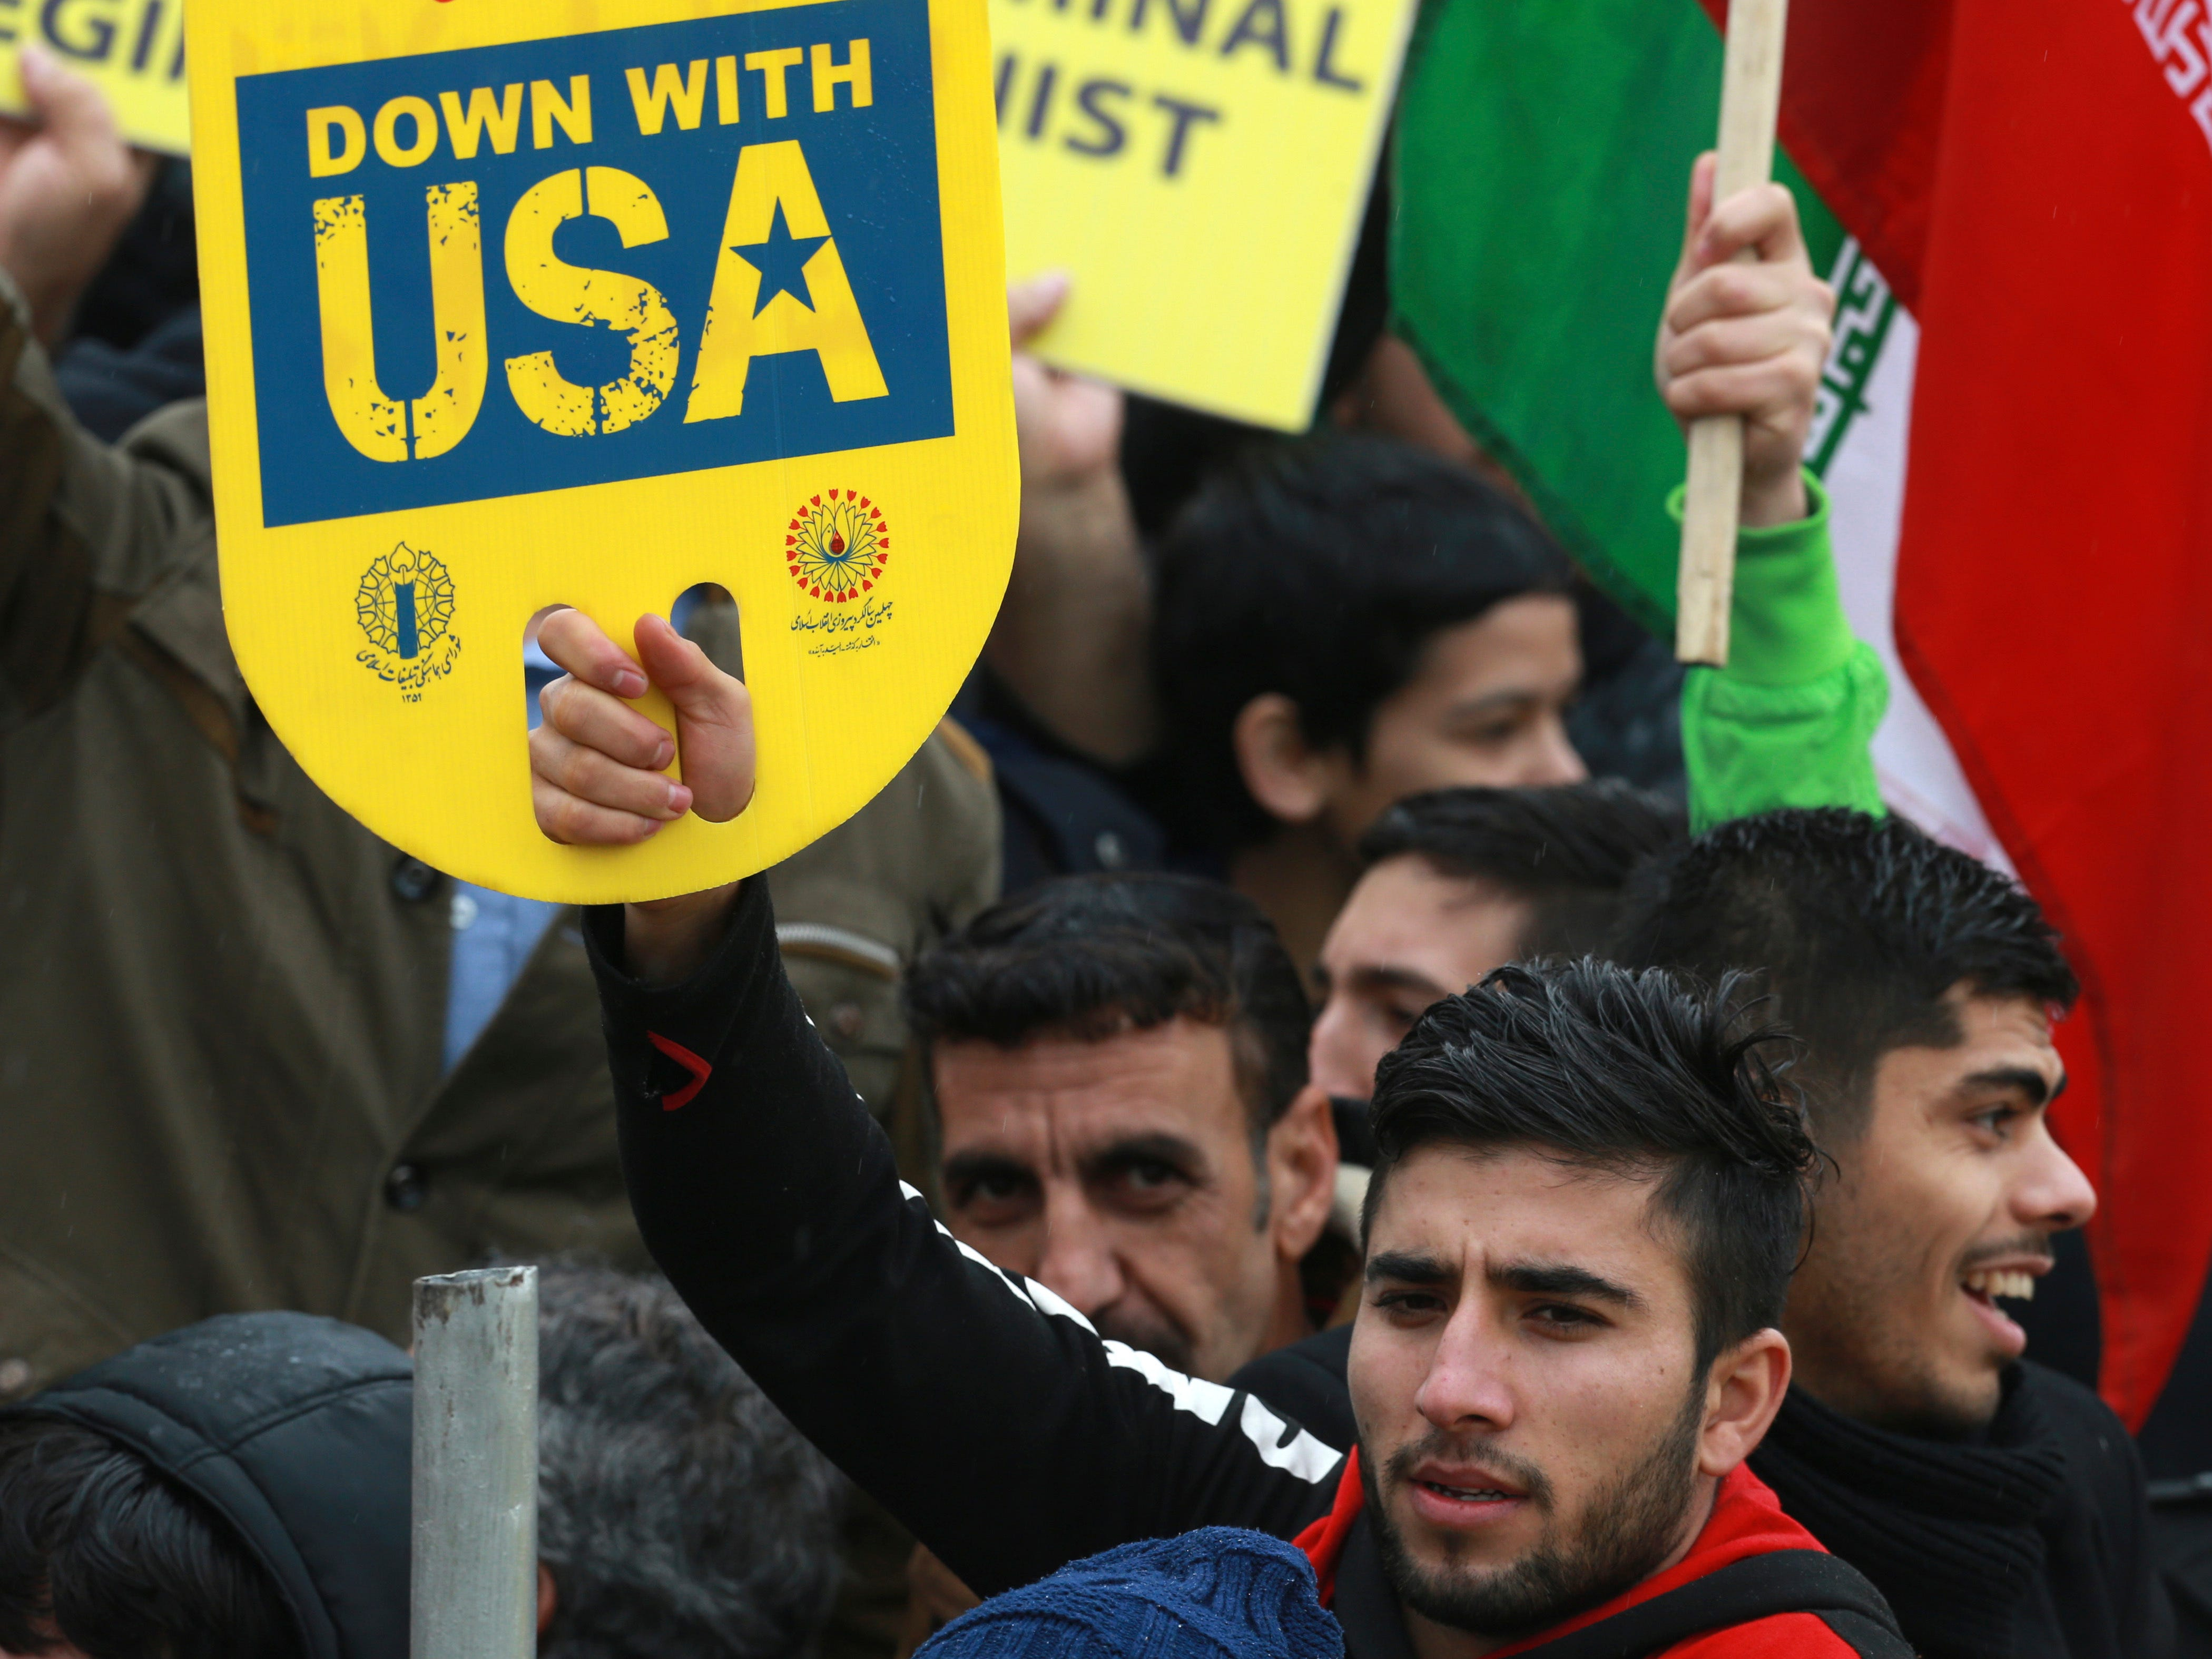 """A demonstrator holds an anti-U.S. placard during a ceremony celebrating the 40th anniversary of the Islamic Revolution, at the Azadi, Freedom, Square in Tehran on Monday, Feb. 11, 2019. Crowds streamed in the rain from a dozen of the capital's far-flung neighborhoods to mass in central Tehran, waving Iranian flags and chanting """"Death to America,"""" a refrain that has been standard fare at anti-U.S. rallies across Iran."""